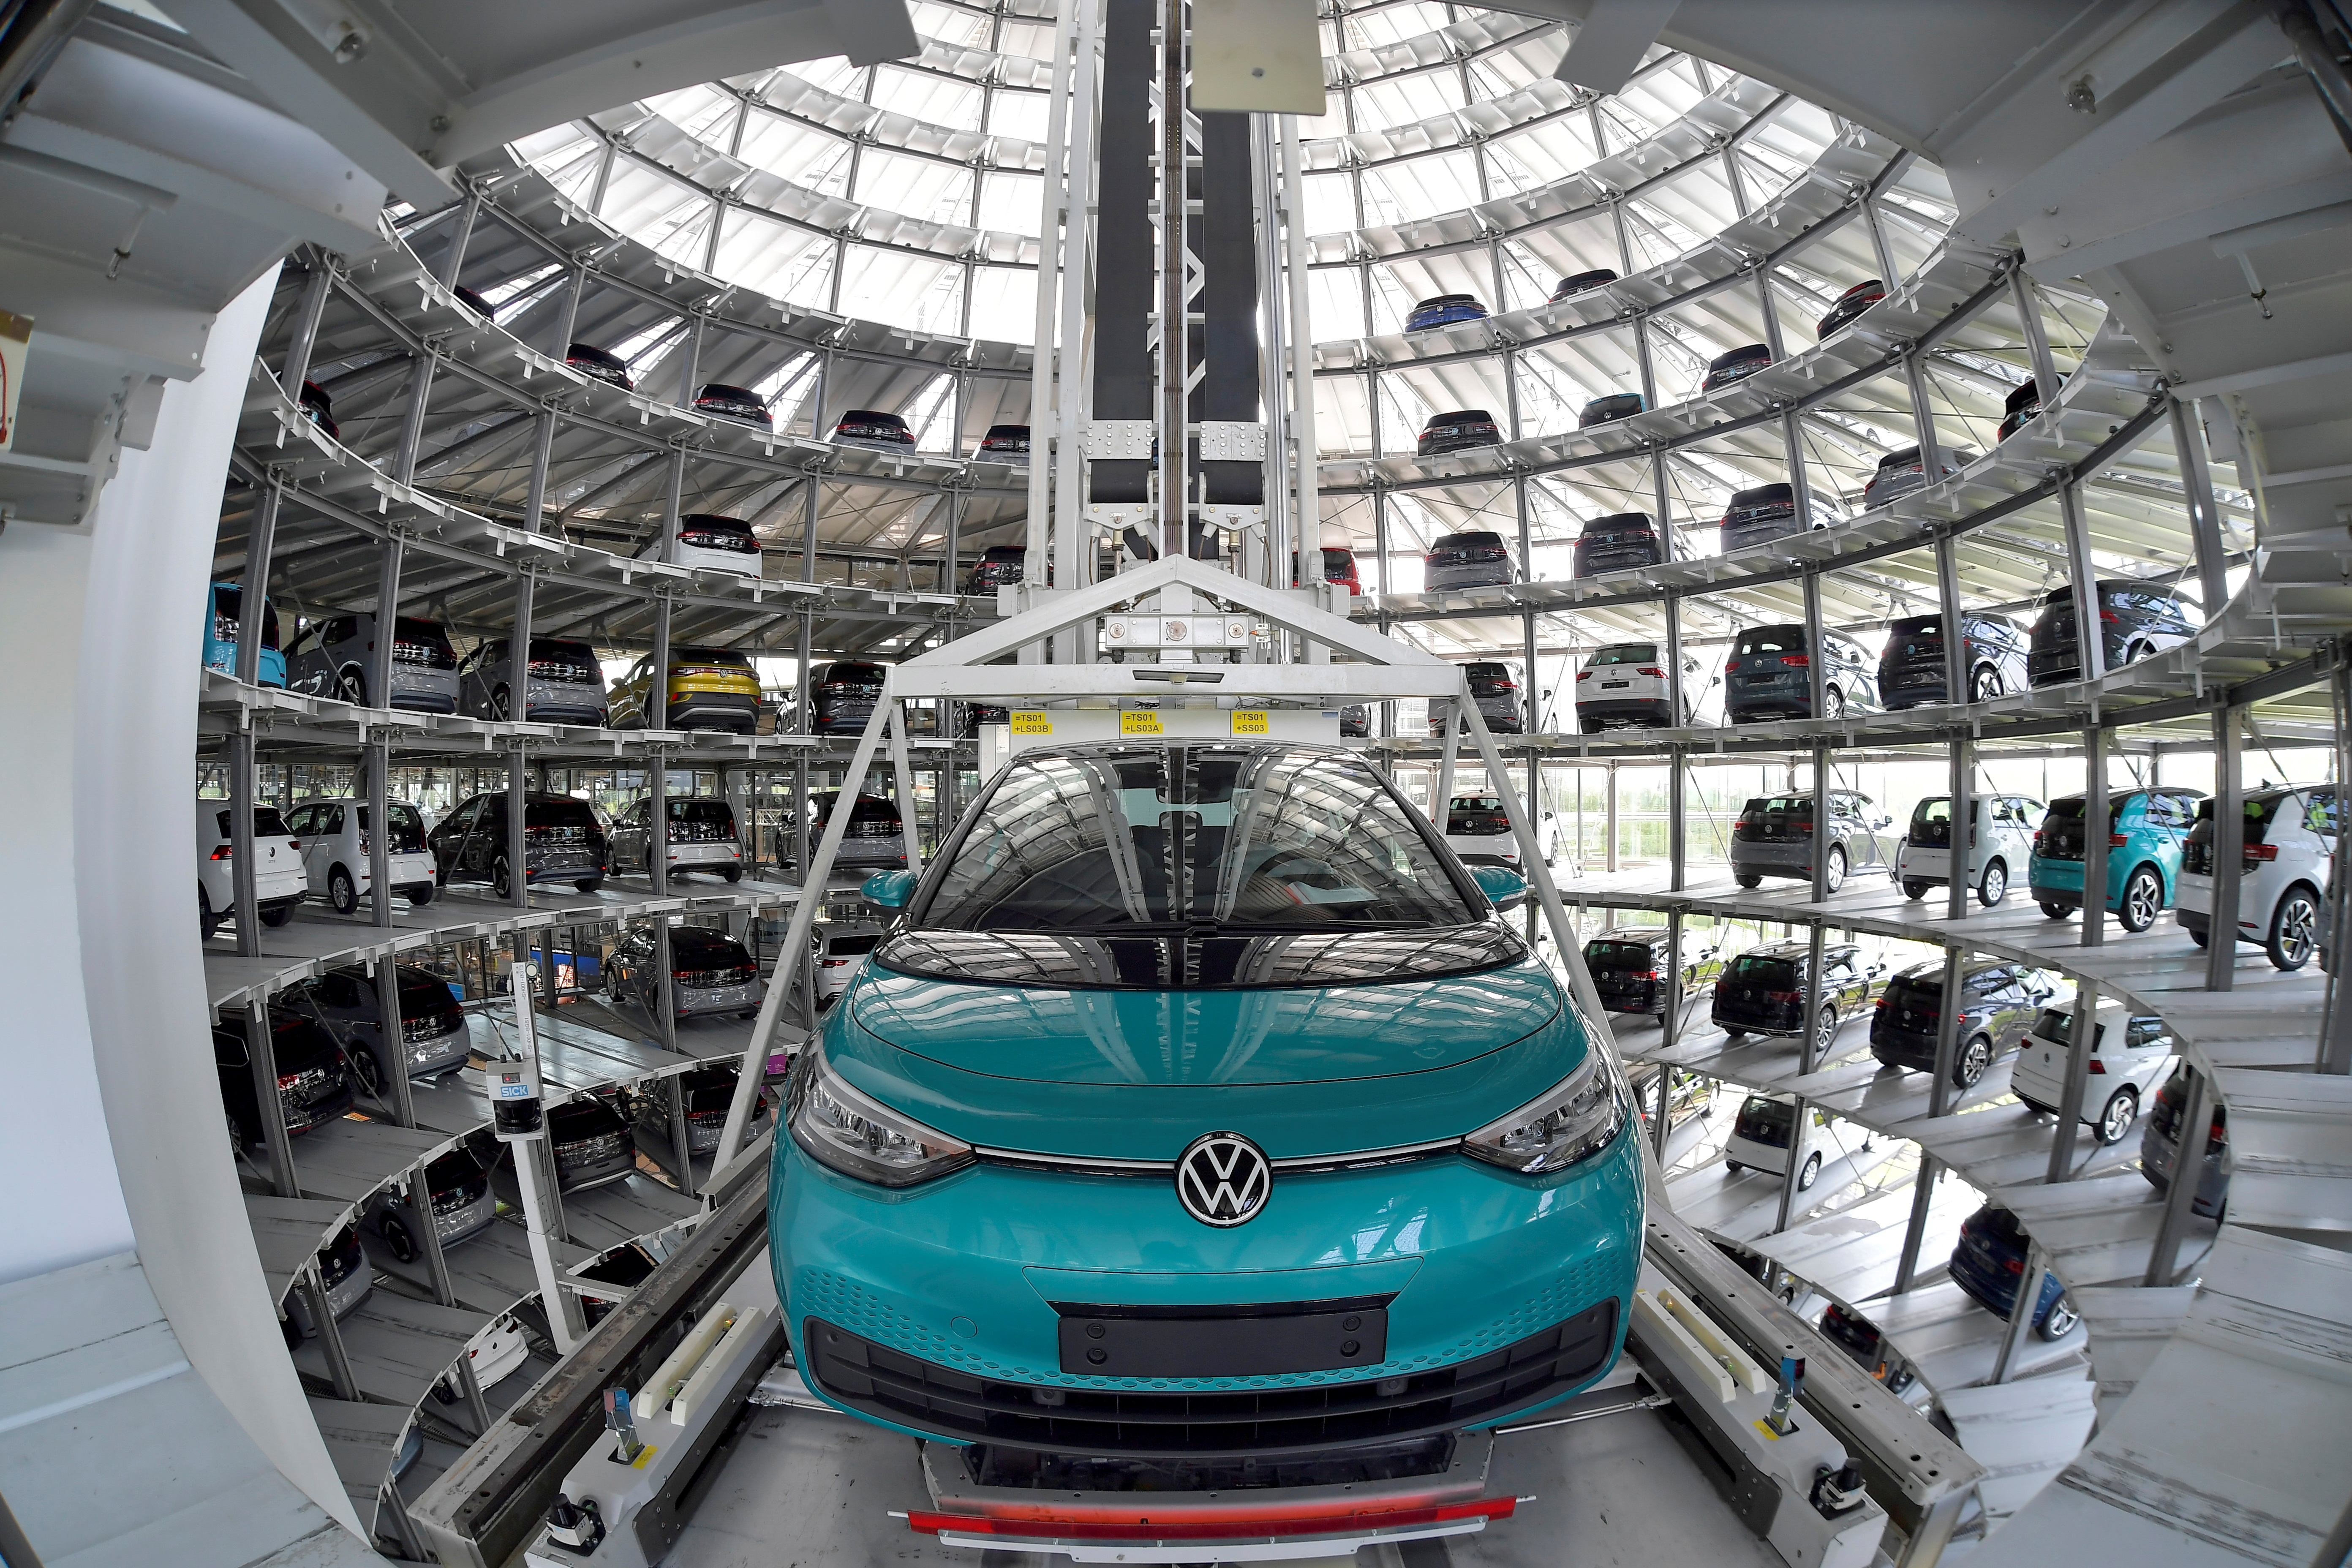 View to the depot tower of German carmaker Volkswagen's electric ID. 3 car in Dresden, Germany, June 8, 2021. Picture taken with a fish eye lens. REUTERS/Matthias Rietschel